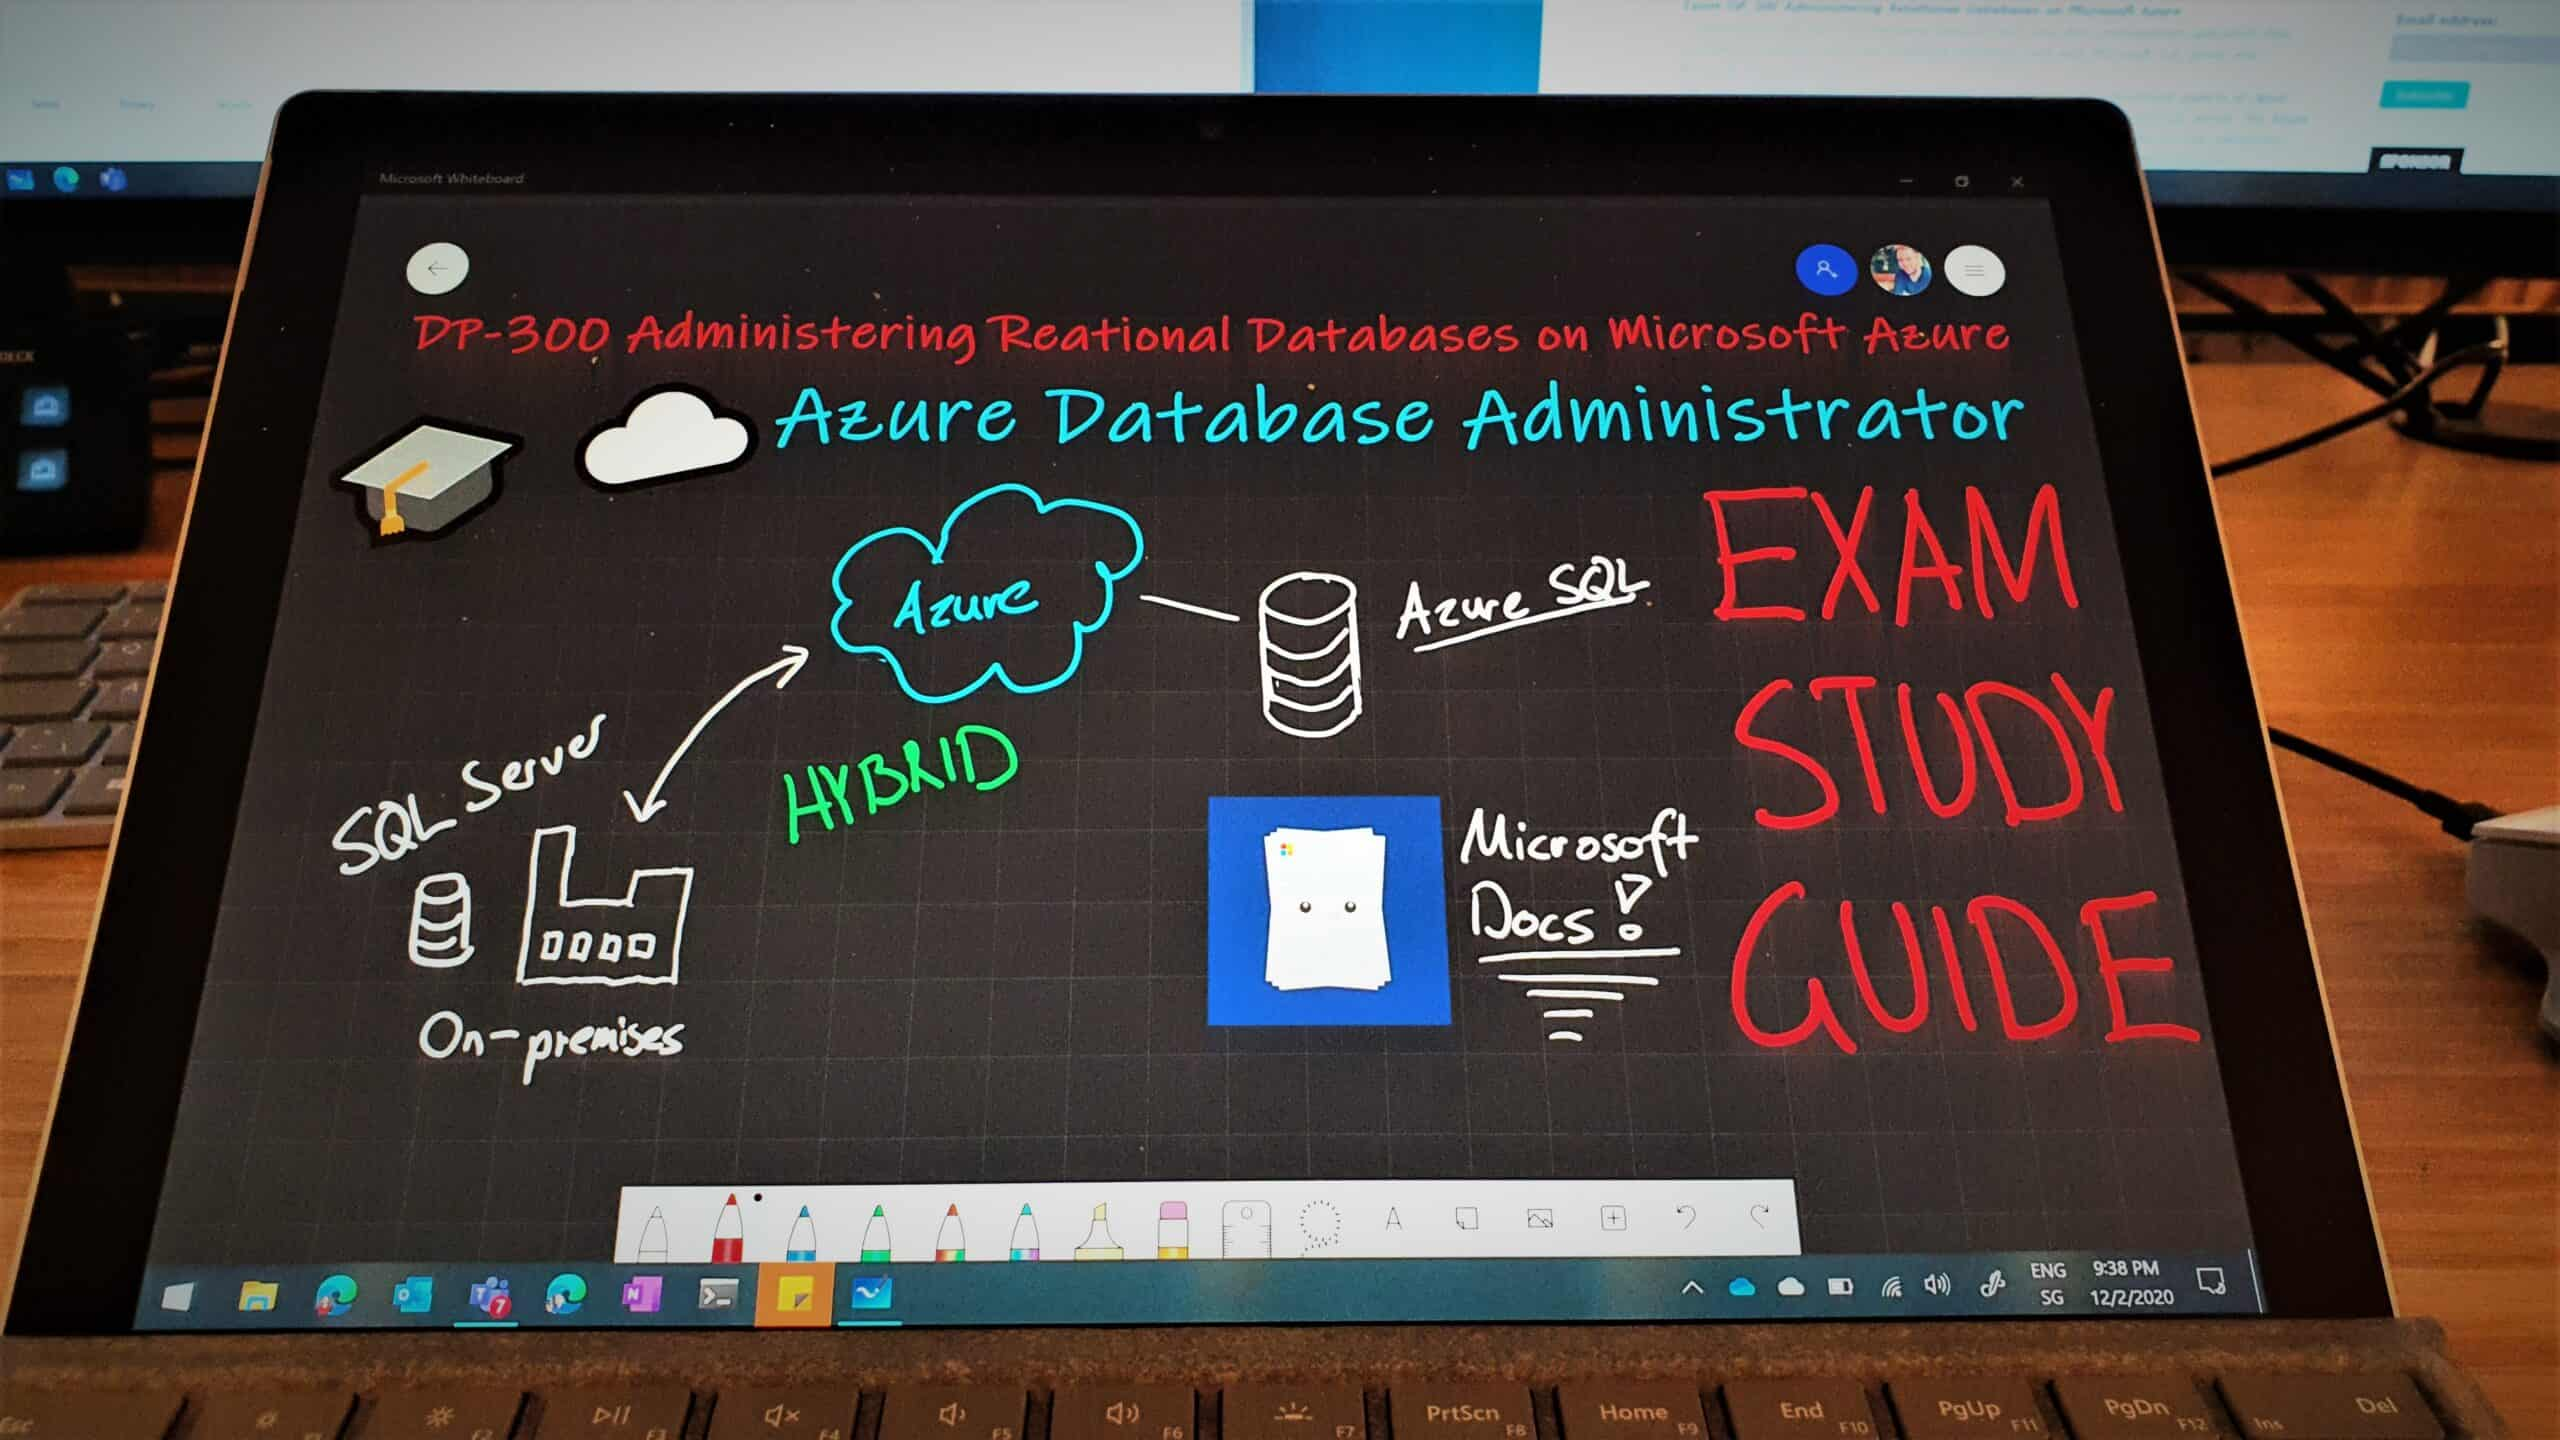 DP-300 Exam Study Guide Microsoft Azure Database Administrator